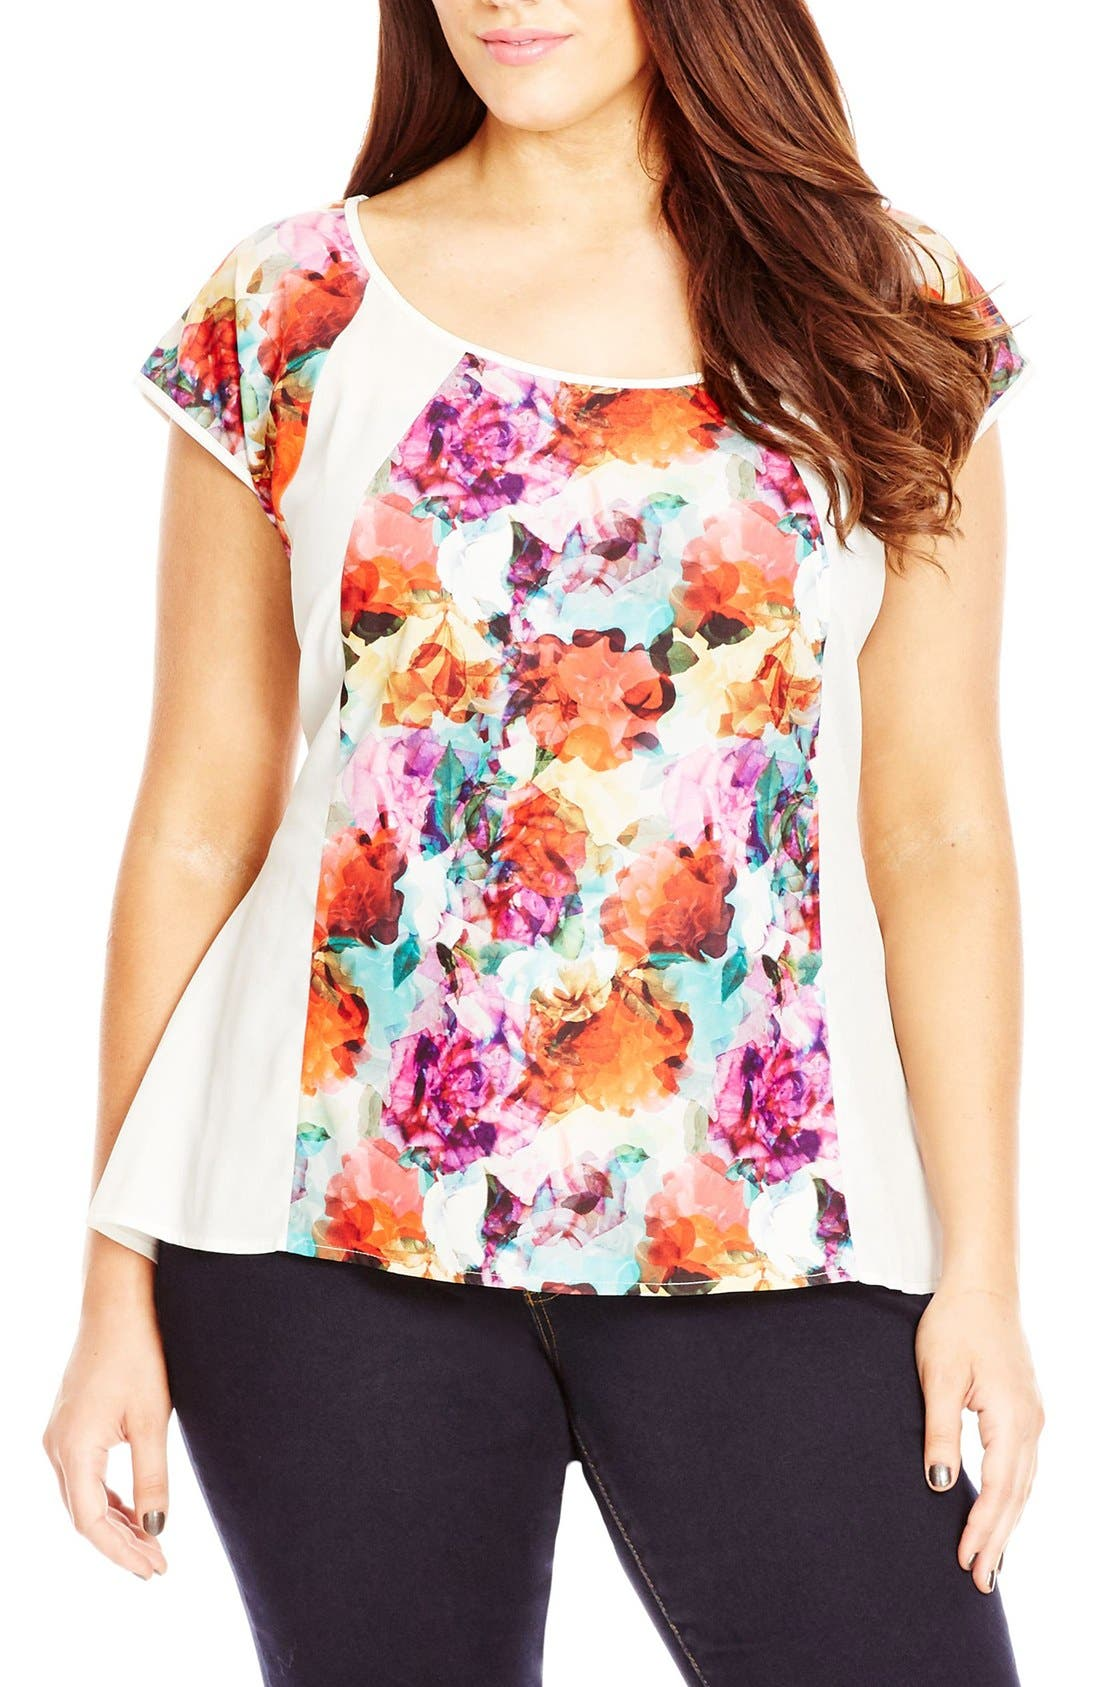 City Chic 'Water Floral' Print Top (Plus Size)